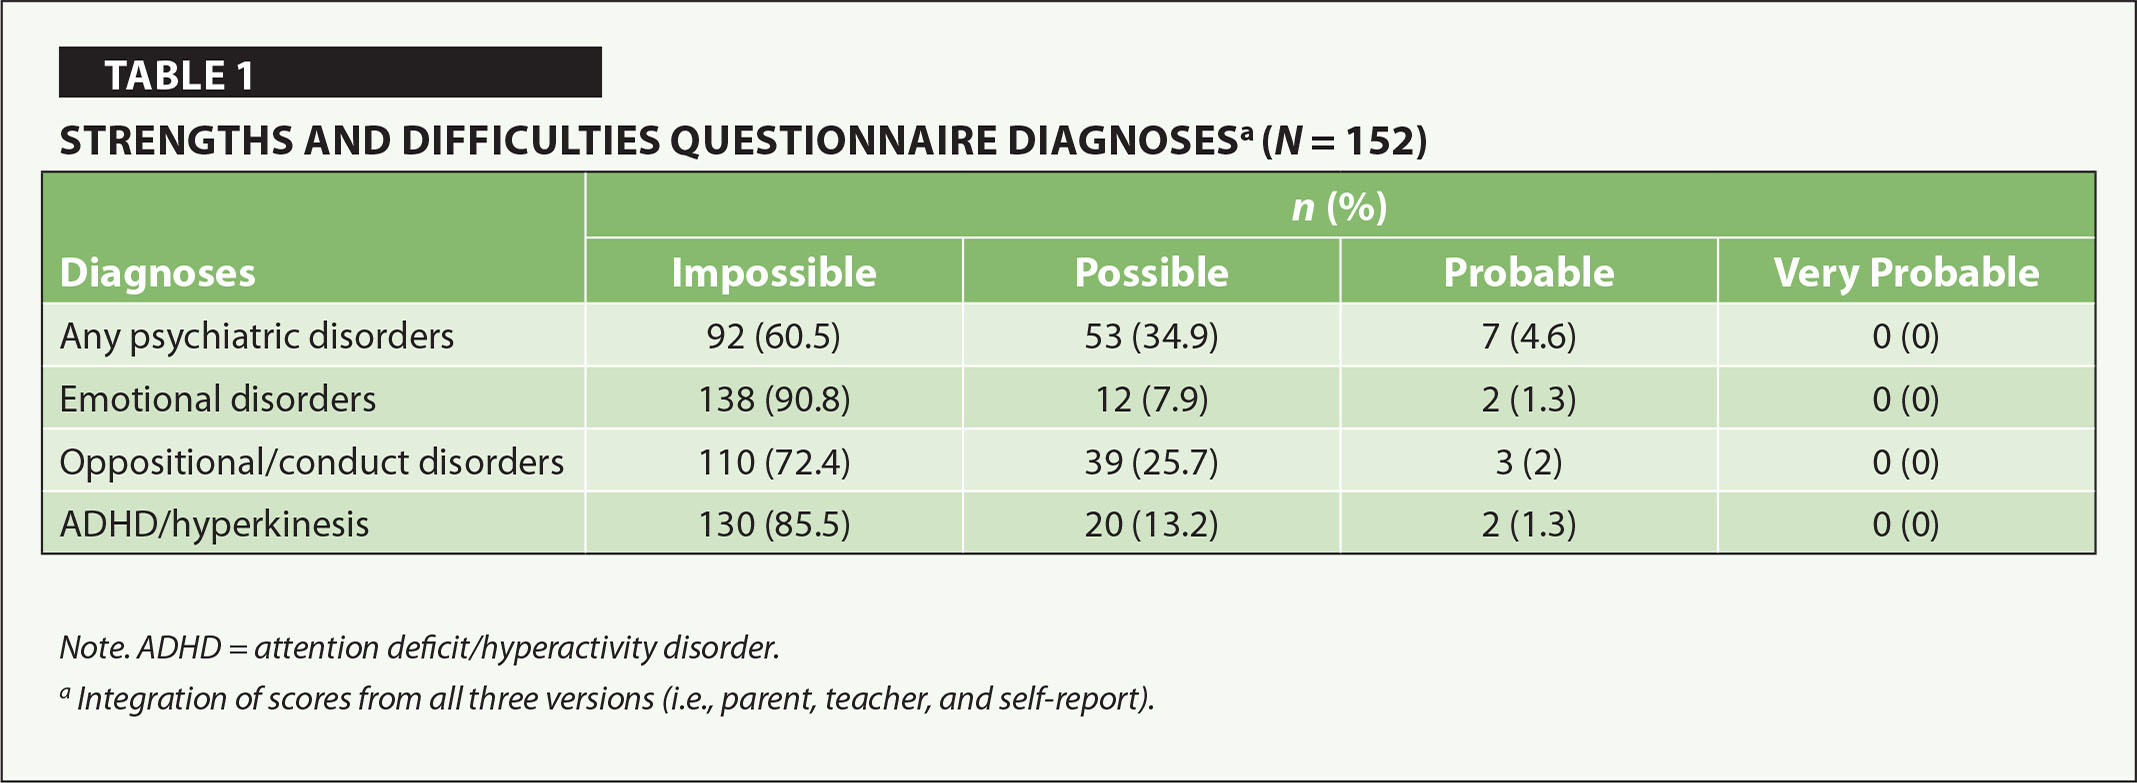 Strengths and Difficulties Questionnaire Diagnosesa (N = 152)